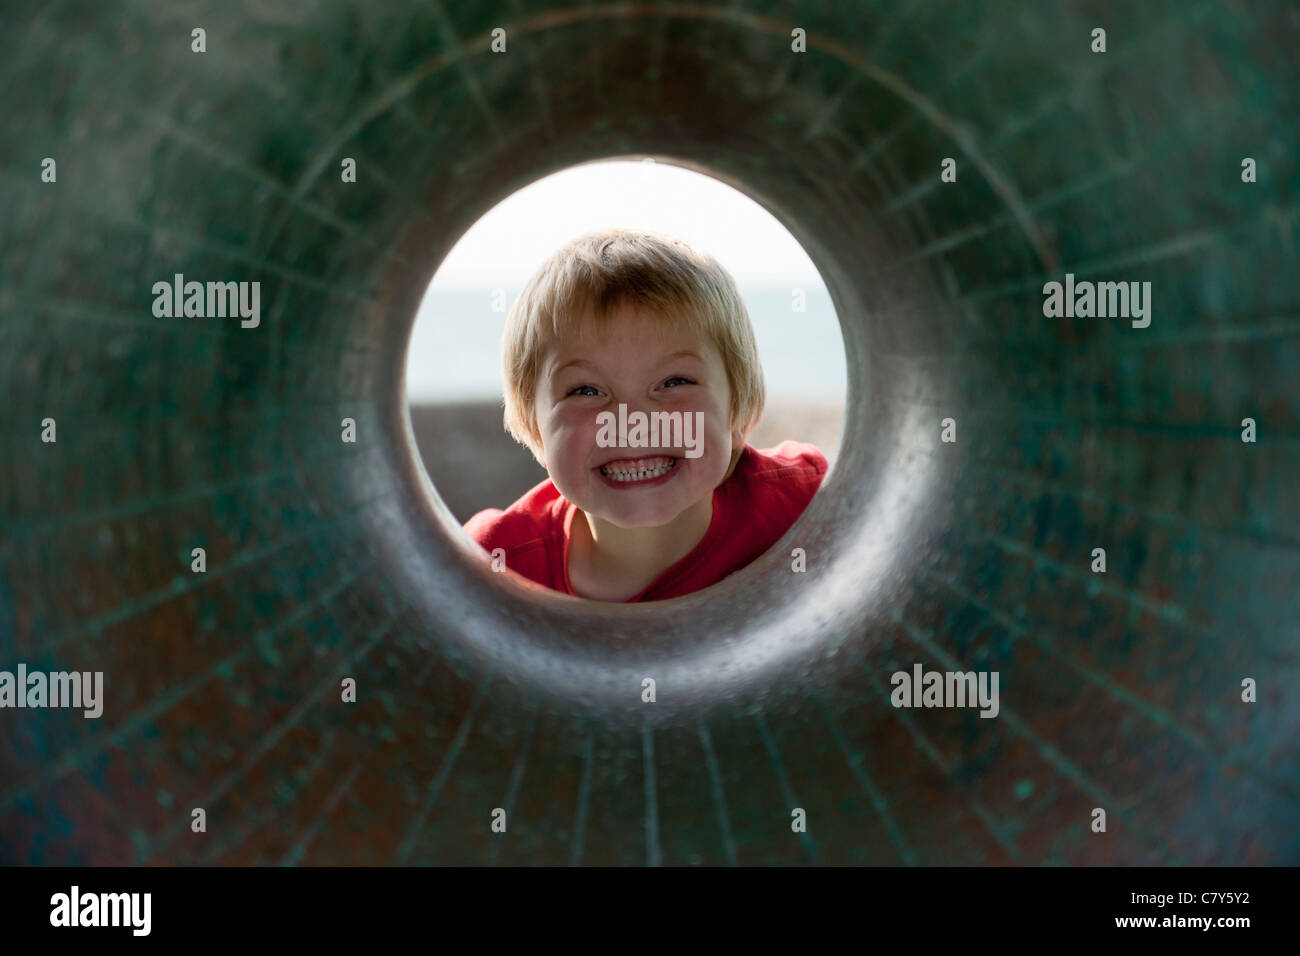 blond haired boy with a big smiley face - Stock Image